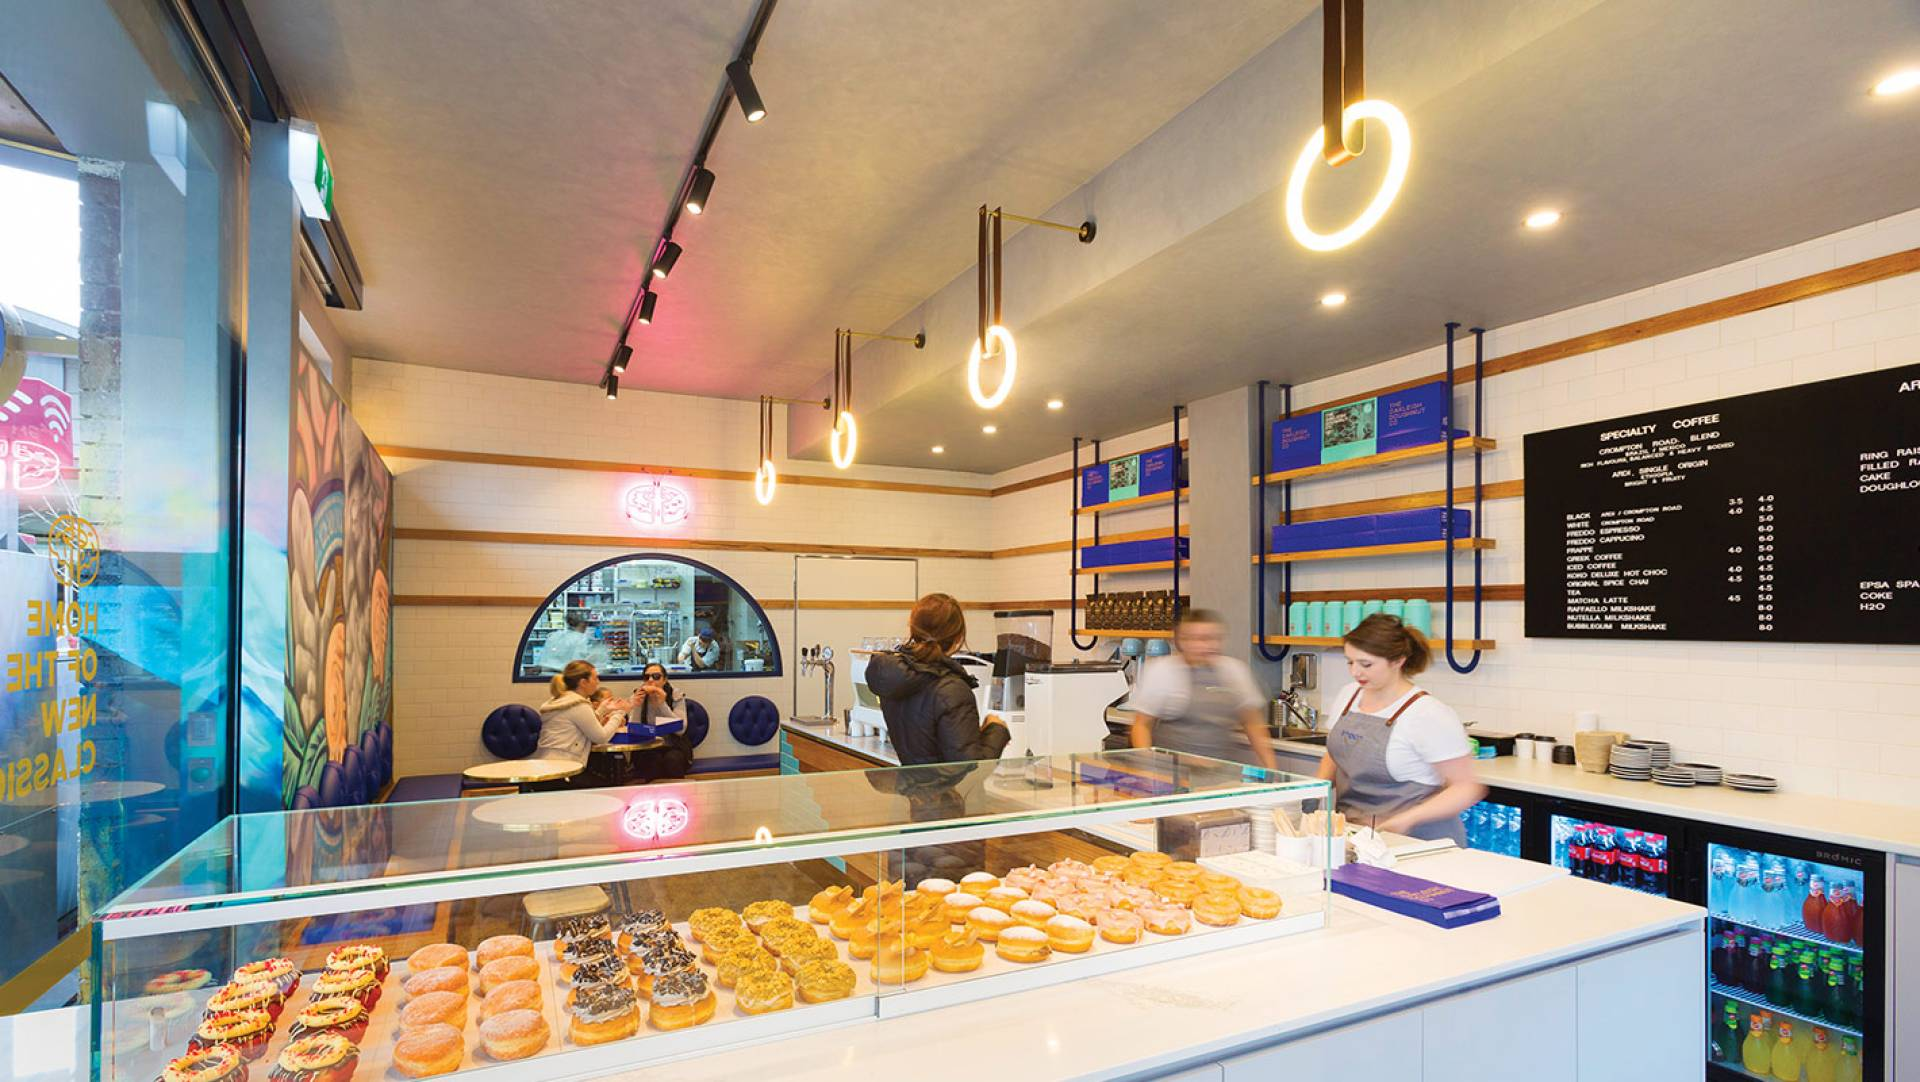 Doughnut & Cafe Design Melbourne-Oakleigh Doughnut Co TODCO Designer: Doughnut Display